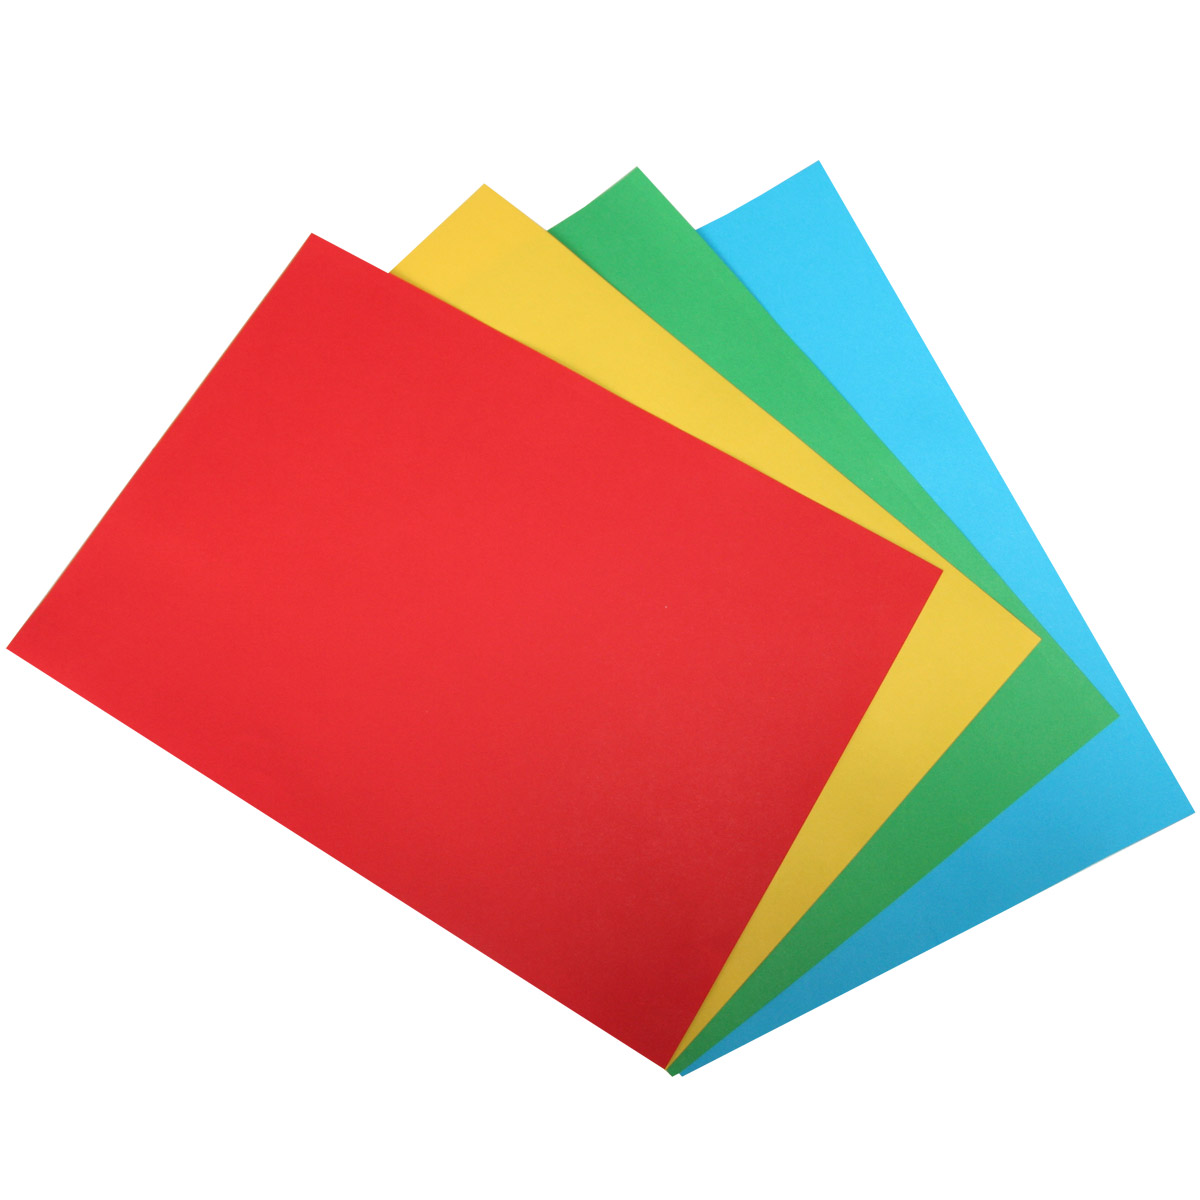 Self-adhesive paper for all types of printers